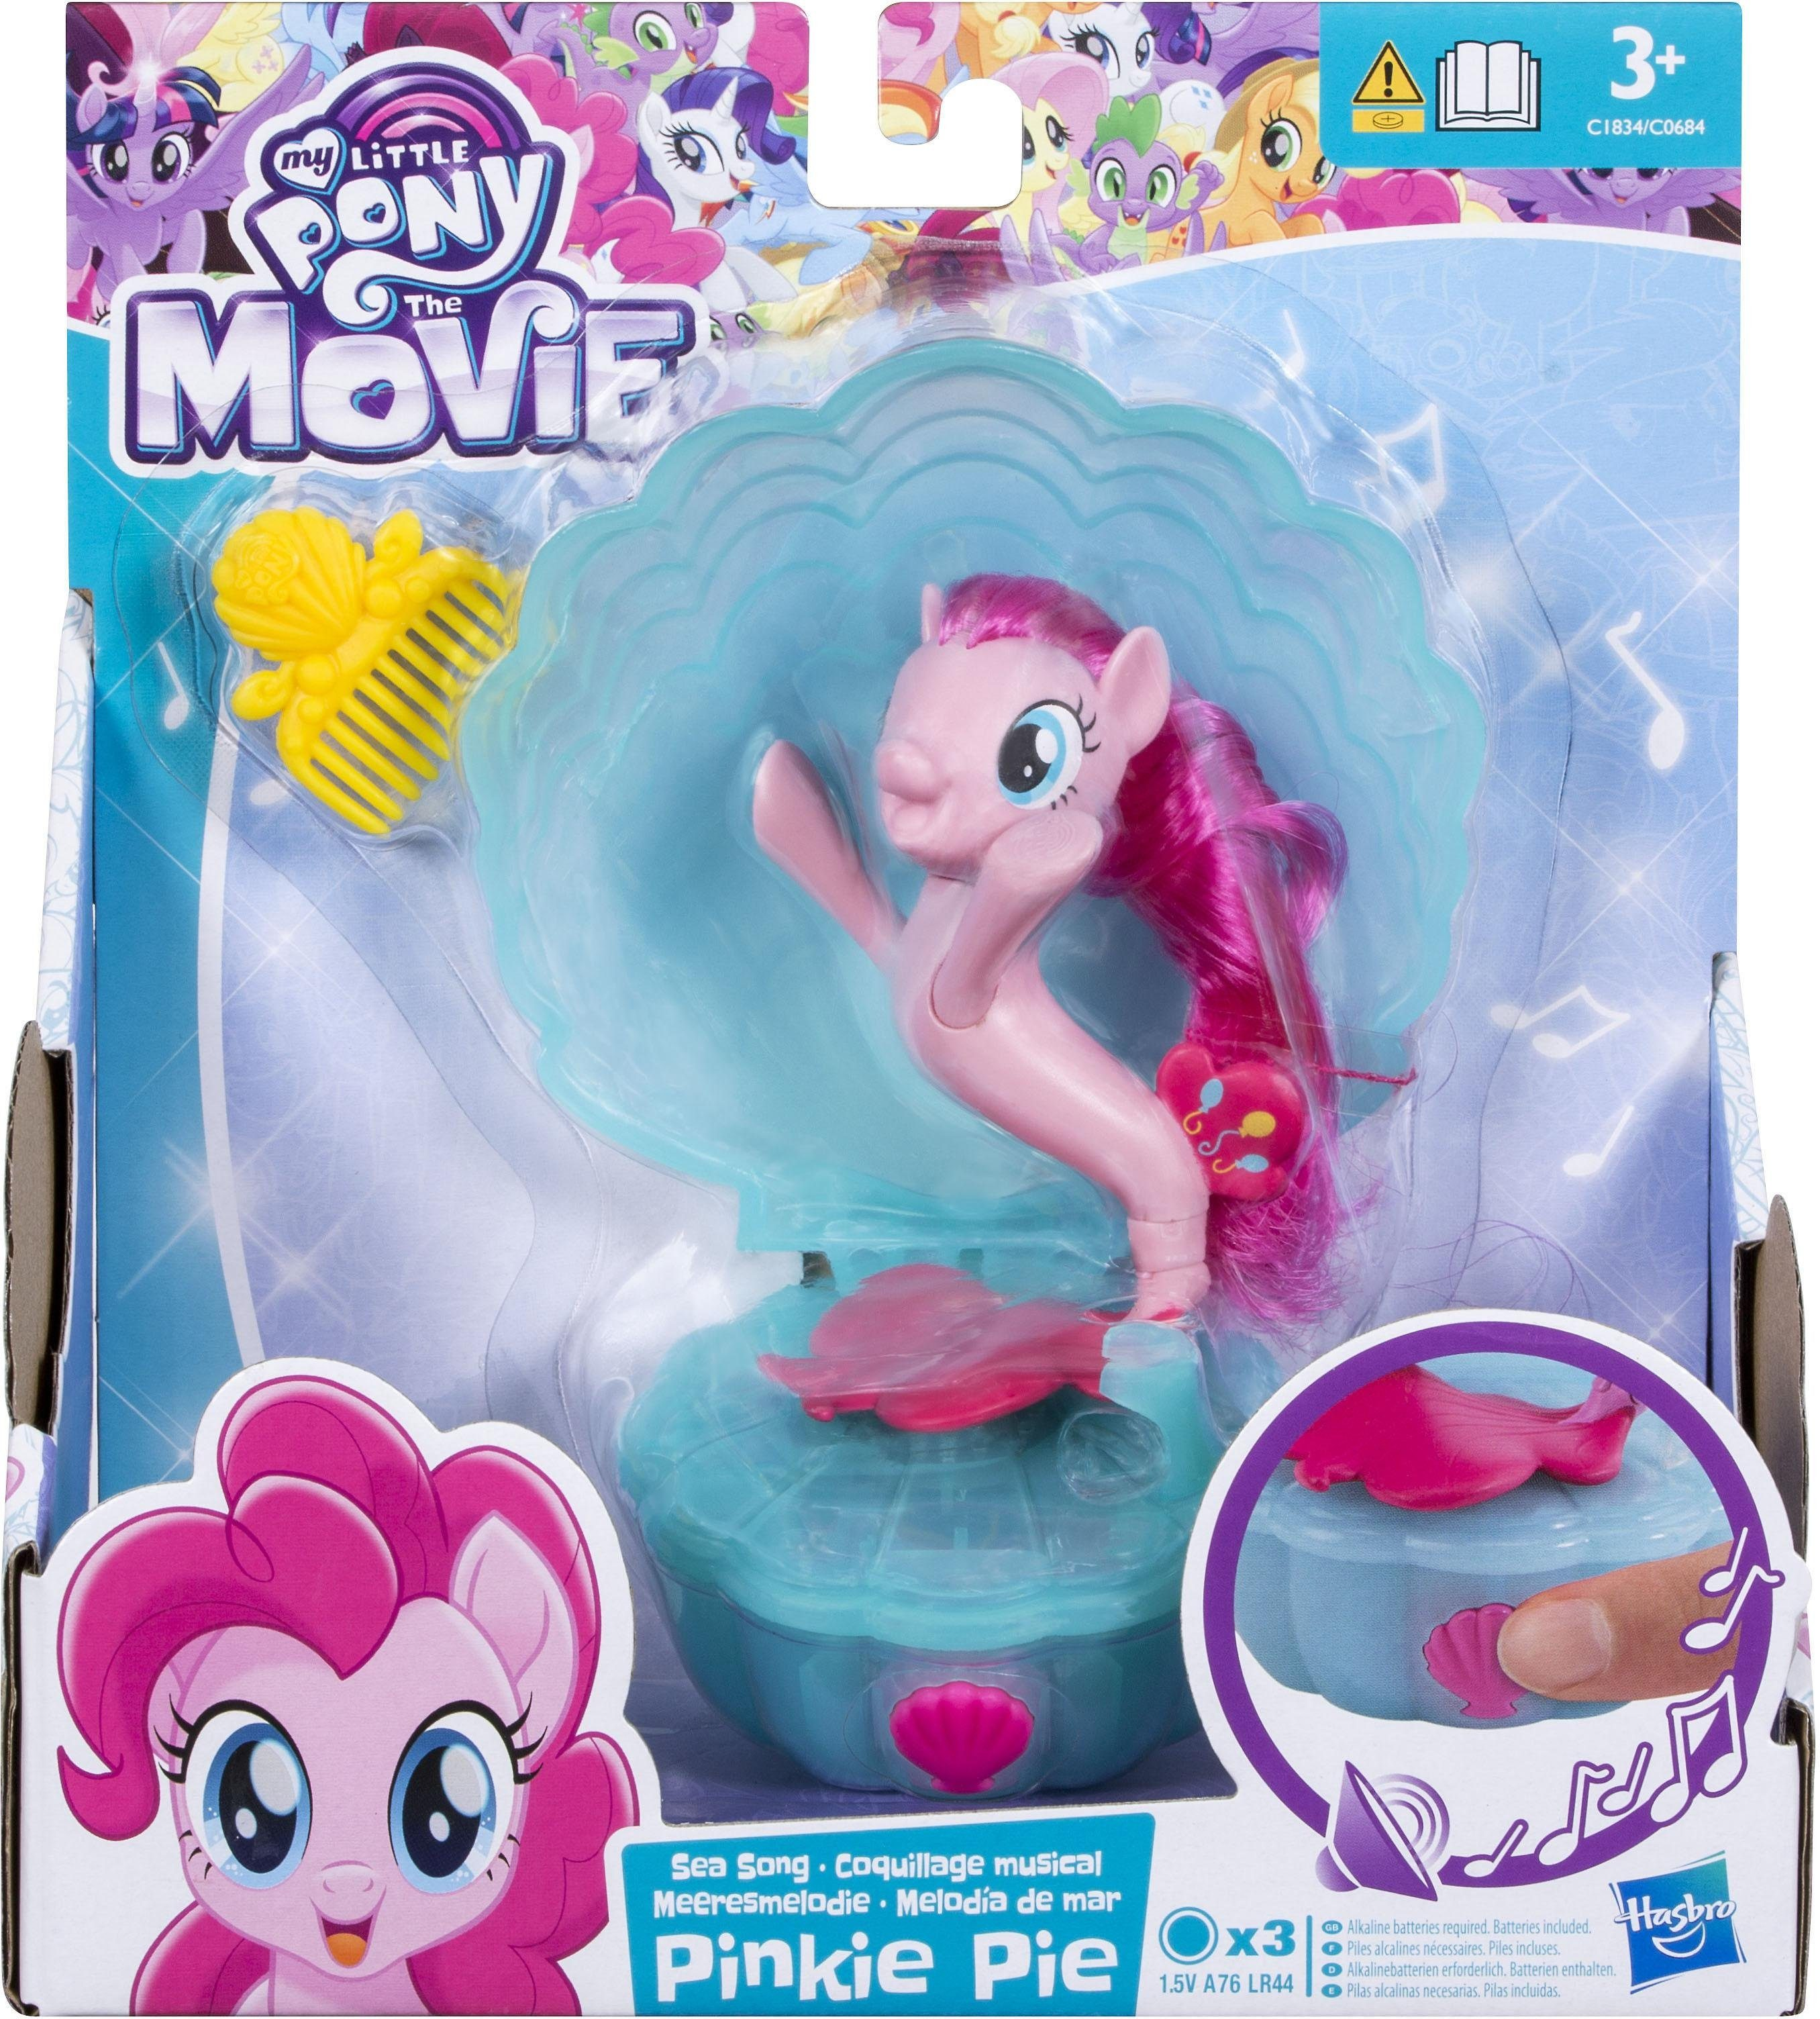 Hasbro Spielfigur mit Soundeffekt, »My Little Pony Movie Meeresmelodie Pony Pinkie Pie«